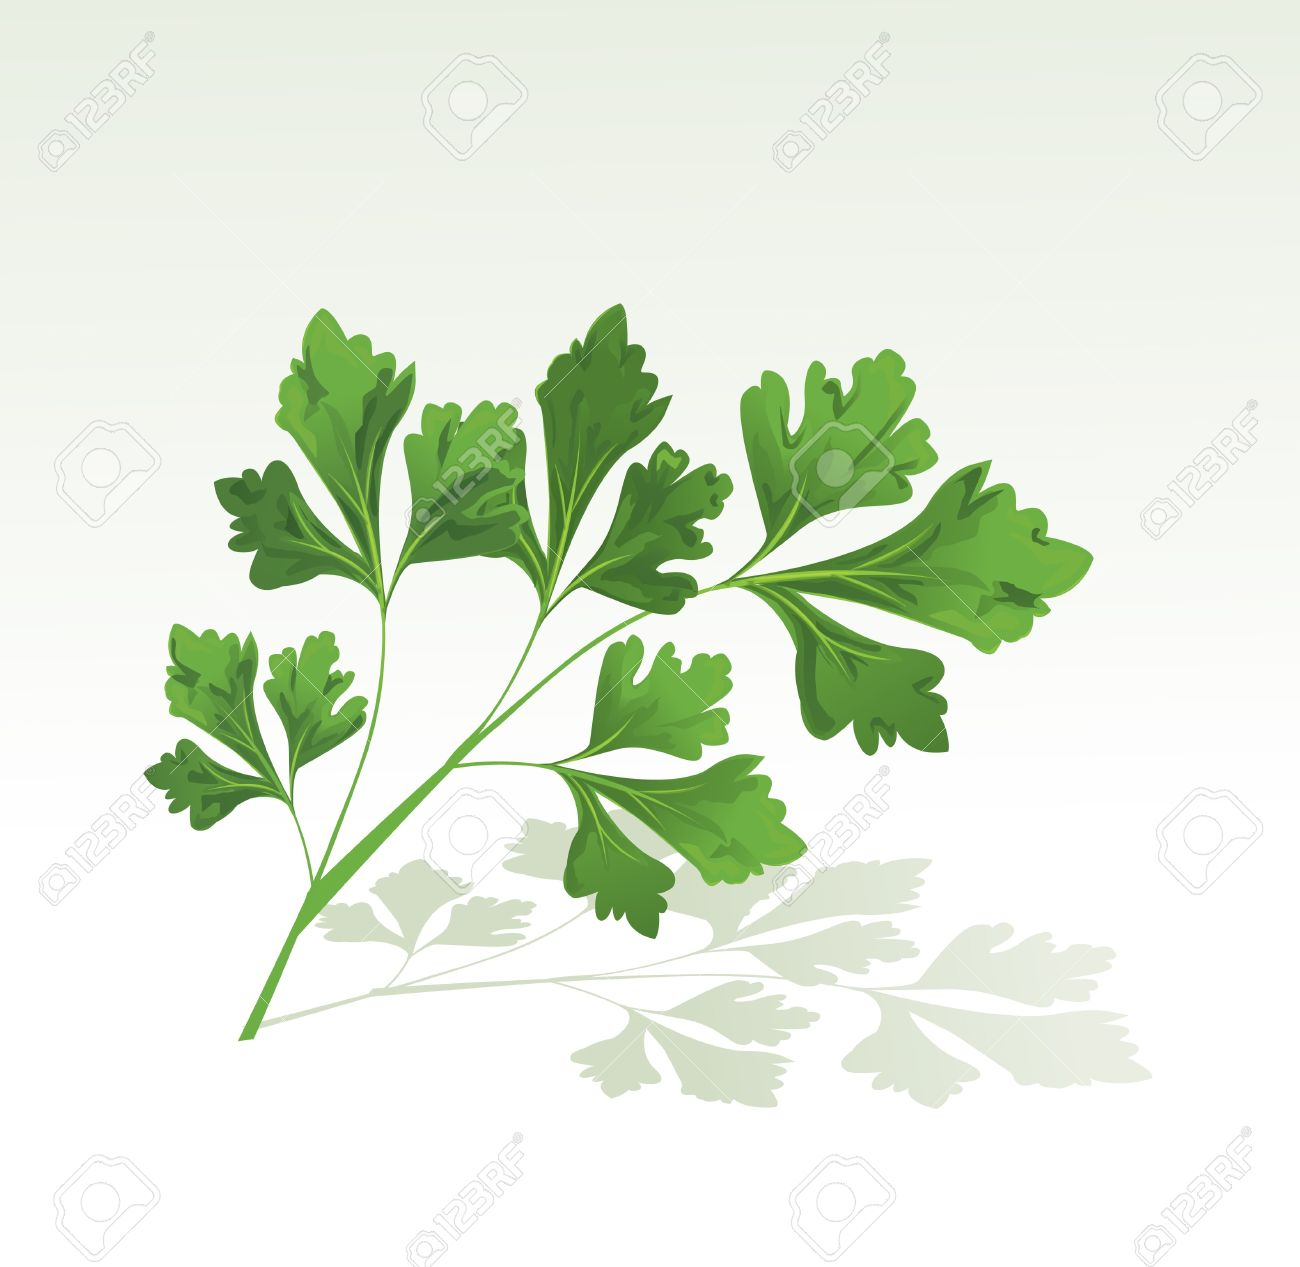 524 Cilantro Cliparts, Stock Vector And Royalty Free Cilantro.